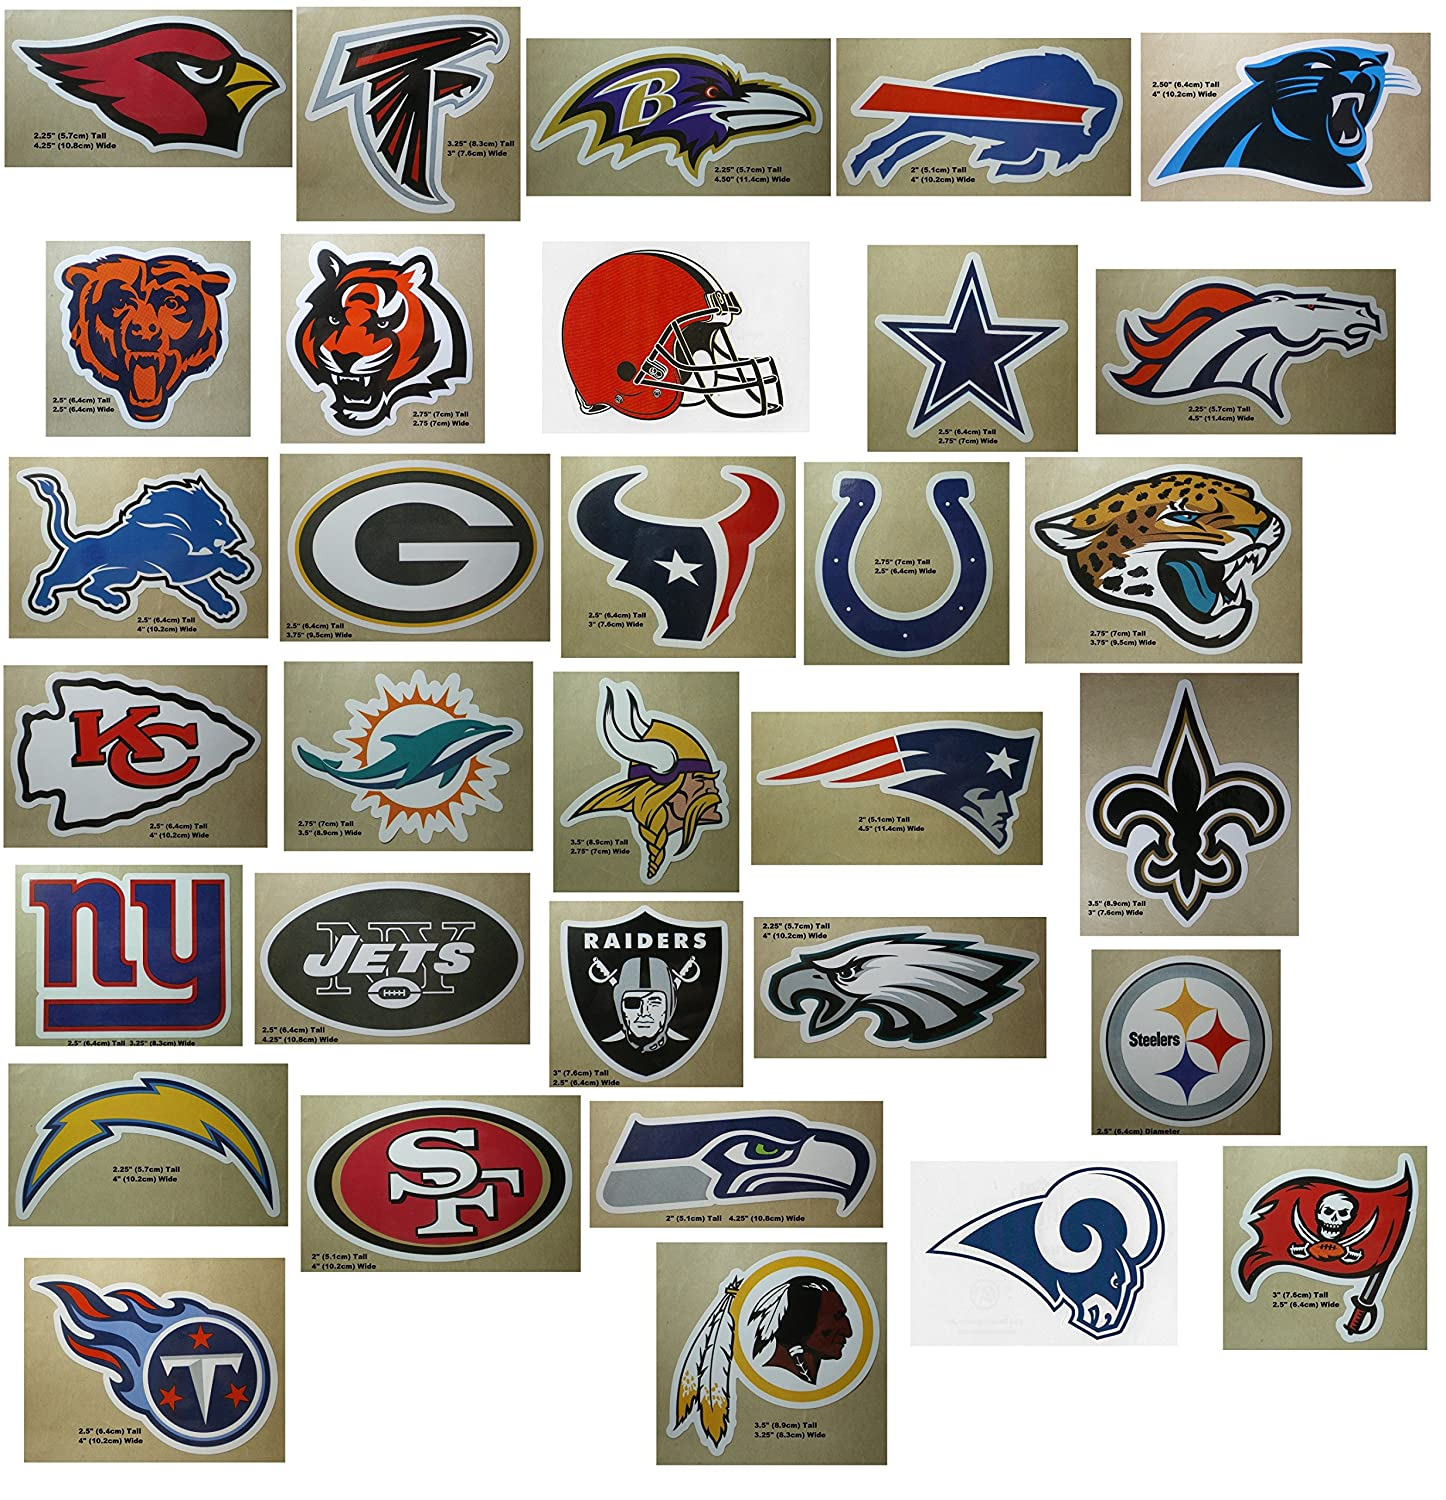 Amazon com nfl team logo stickers set of 50 football stickers all 32 team logos and more 4 25 x 2 75 size sports outdoors